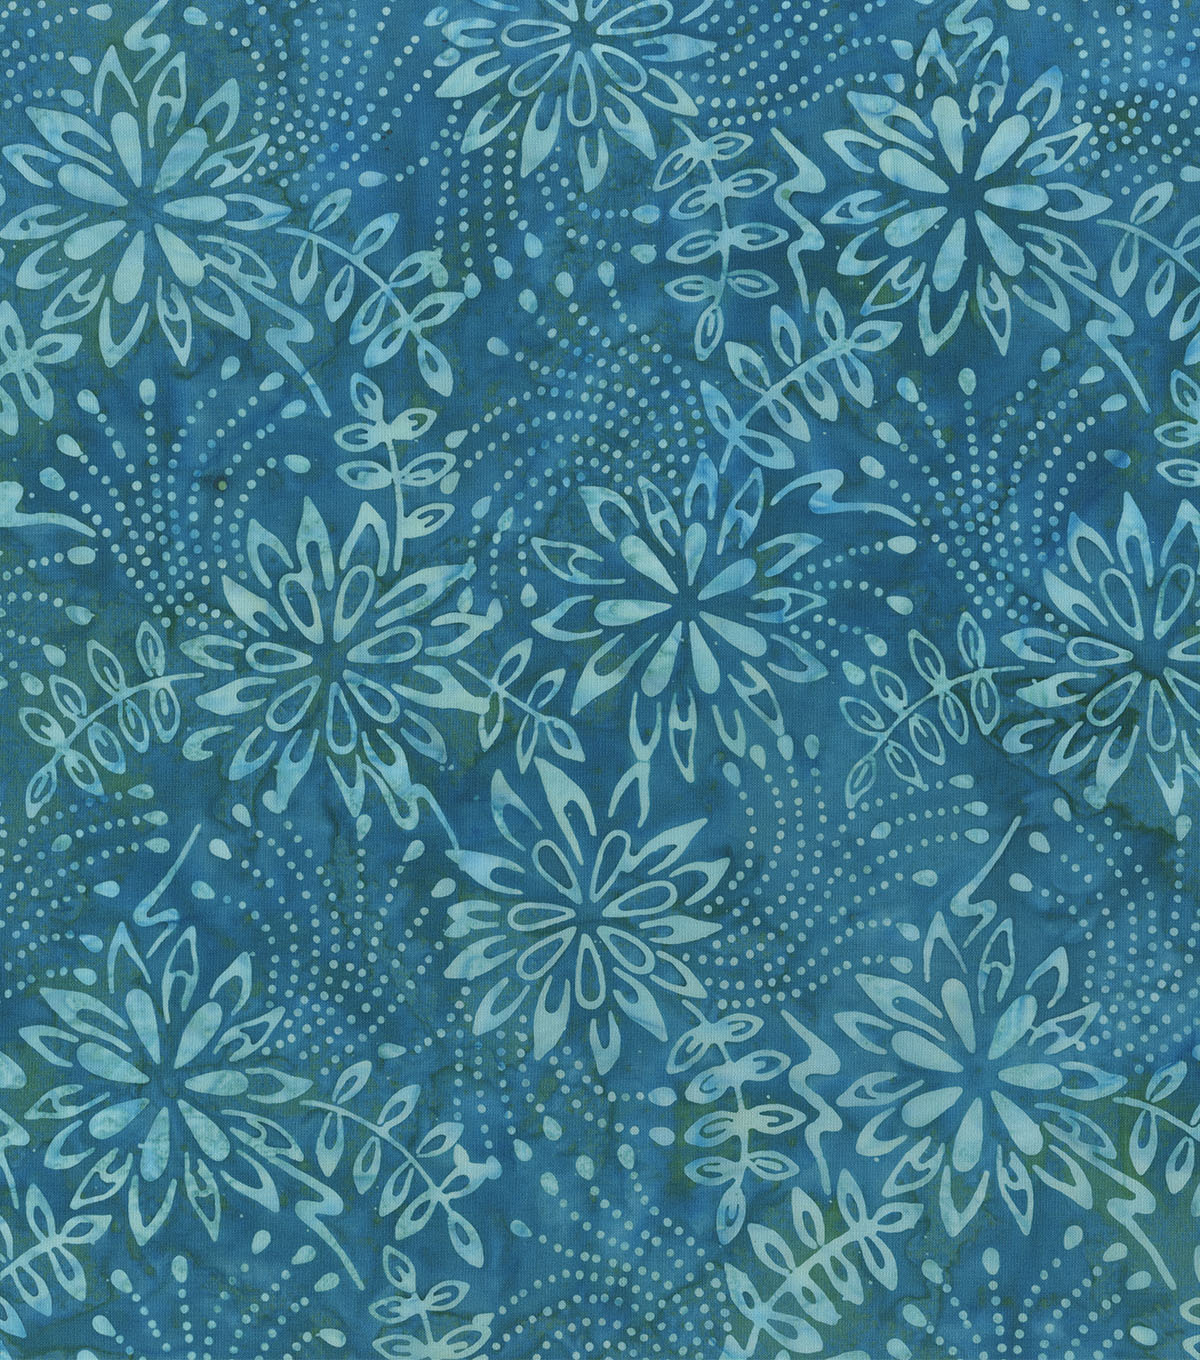 Legacy Studio Indonesian Batiks Cotton Fabric -Teal Florals